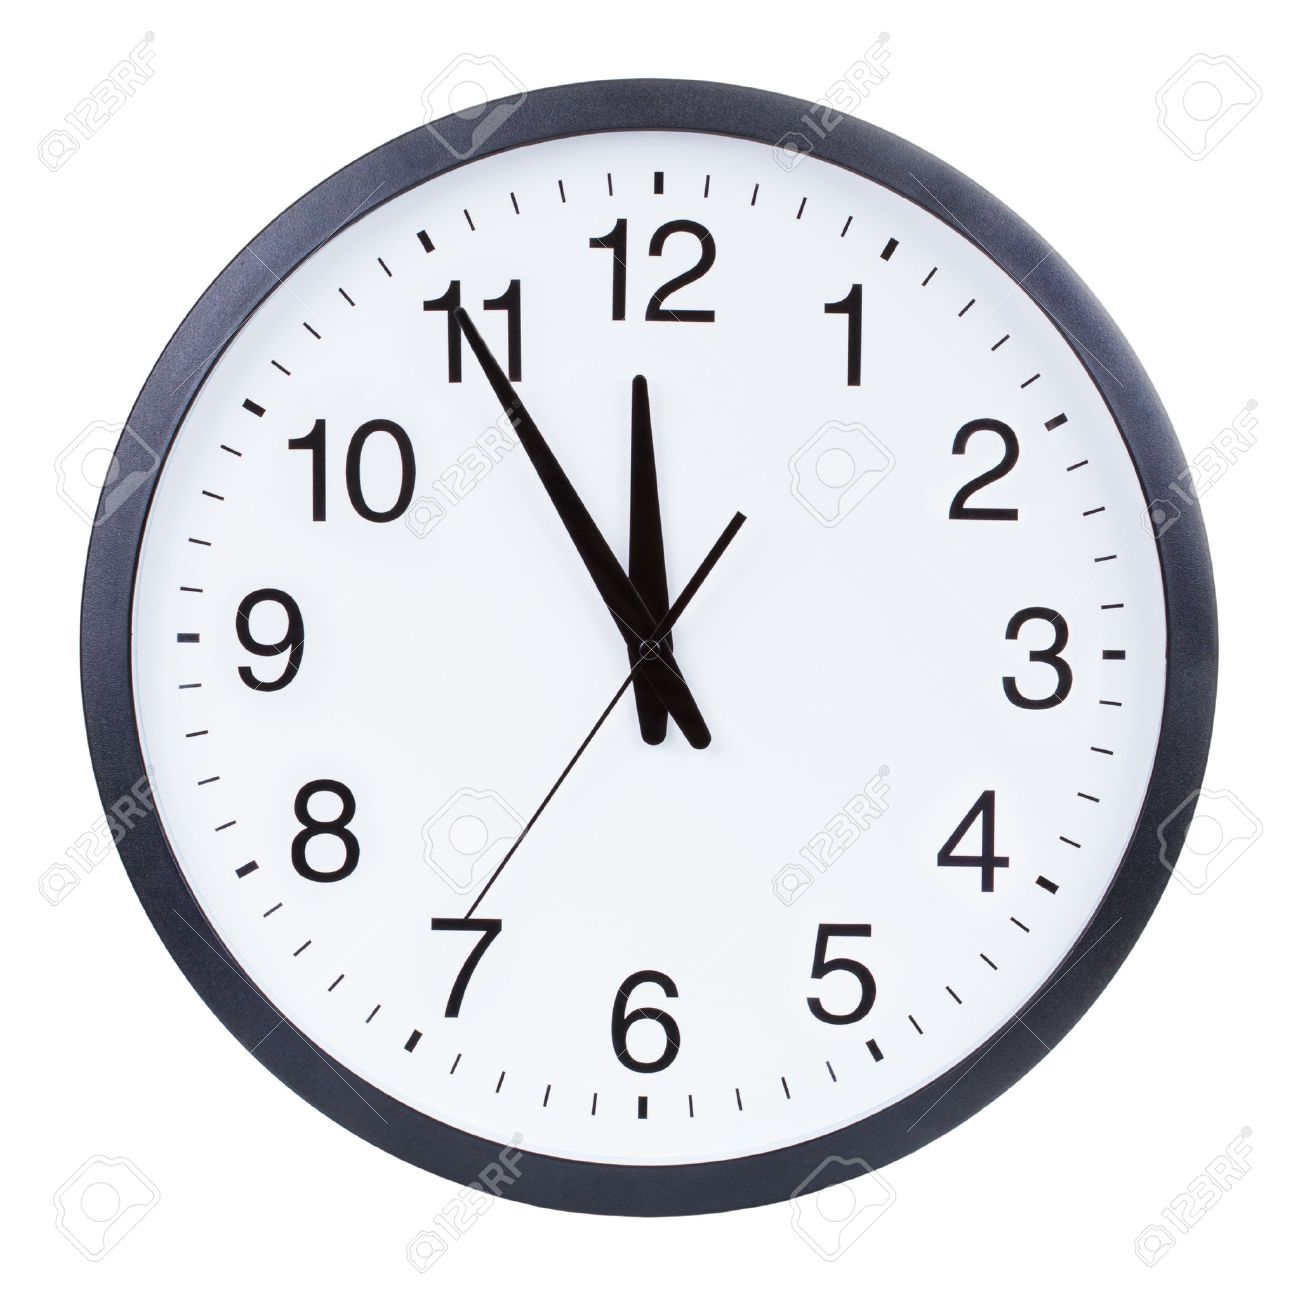 worksheet Clock Face With Hands clock face showing the hands at five minutes to midnight stock photo 29435601